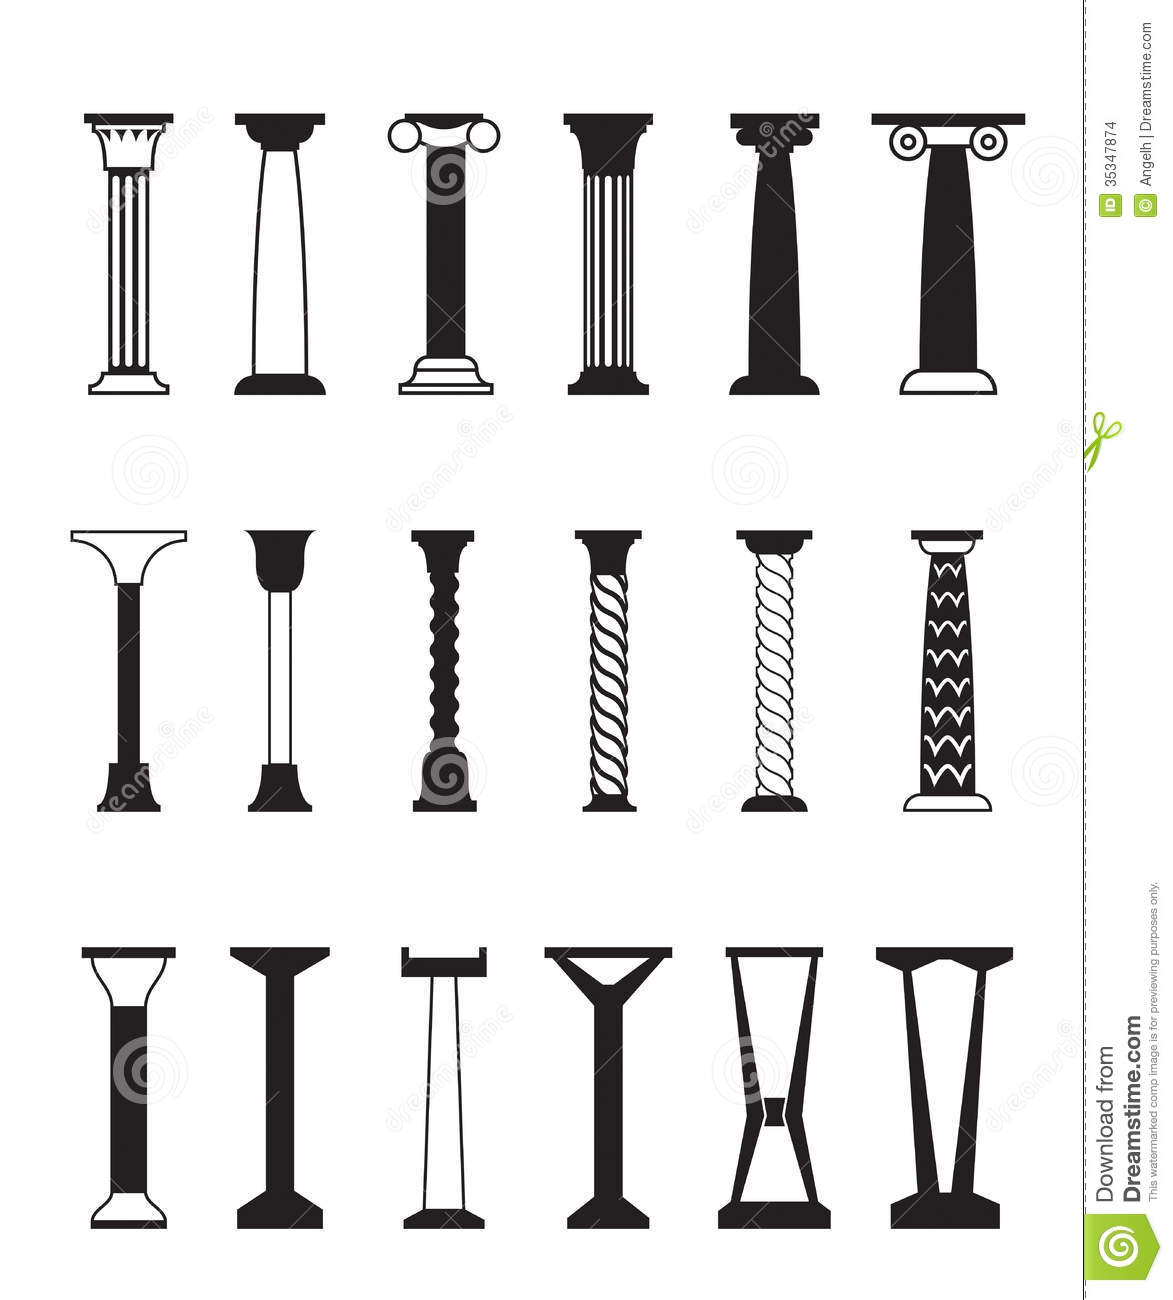 Different Types Of Columns Stock Vector Illustration Of